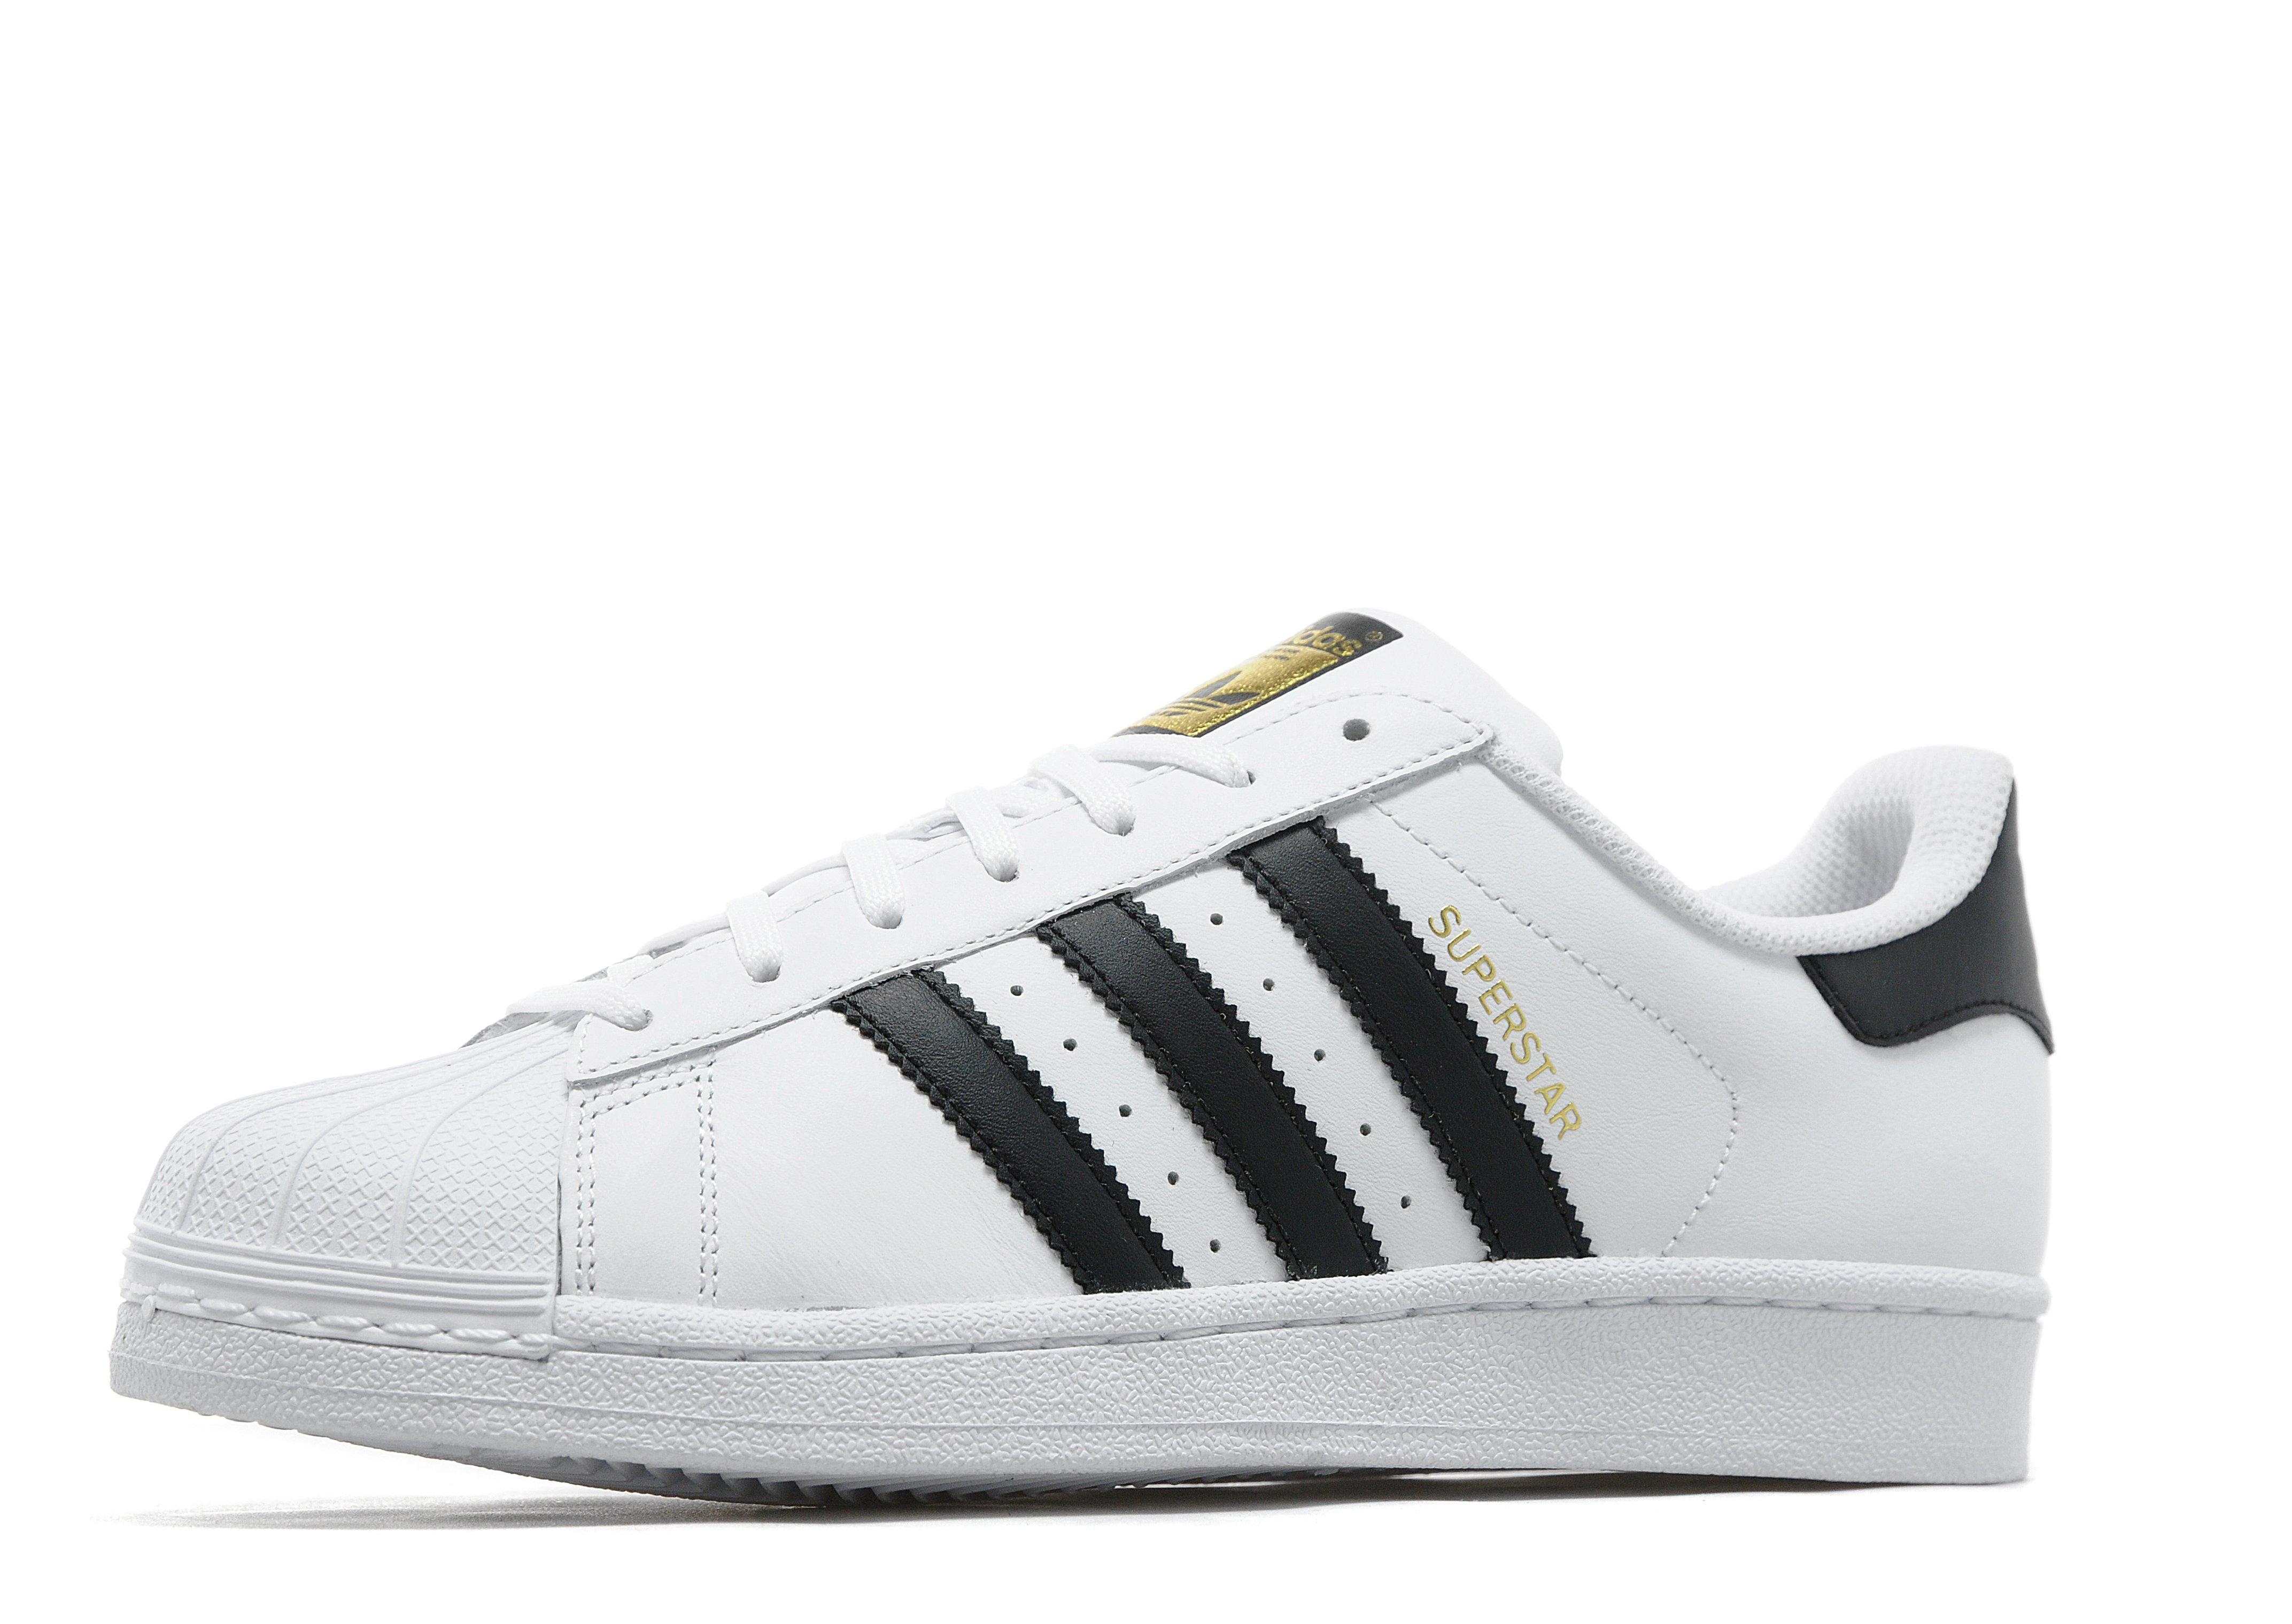 adidas superstar white black size 6 adidas shoes for kids girls 3 4